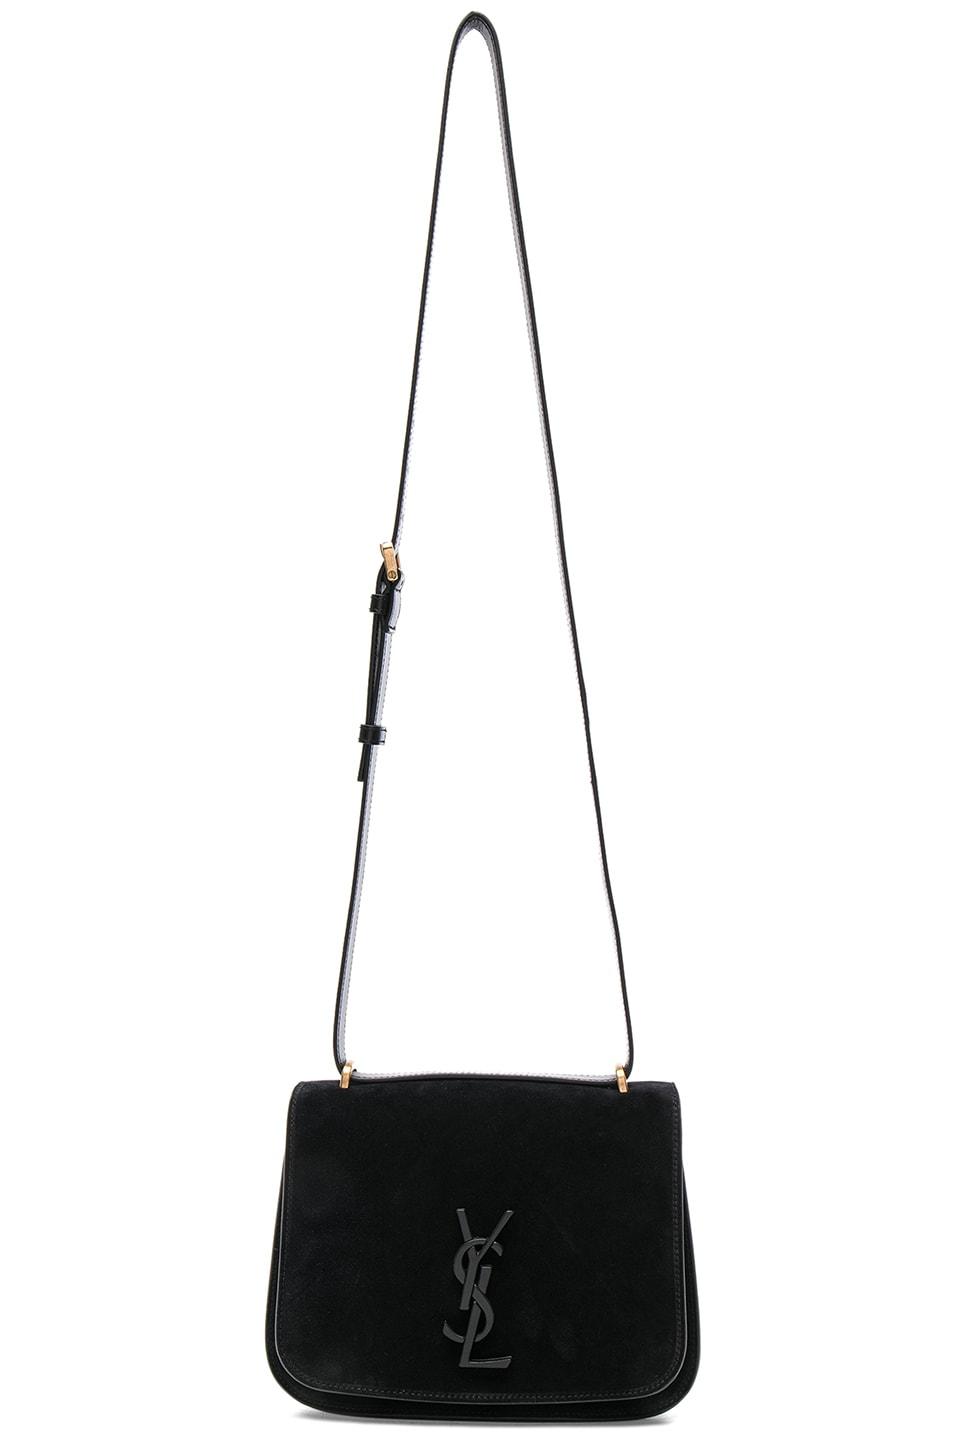 29962f5d28 Image 1 of Saint Laurent Small Suede   Leather Monogramme Spontini Satchel  in Black